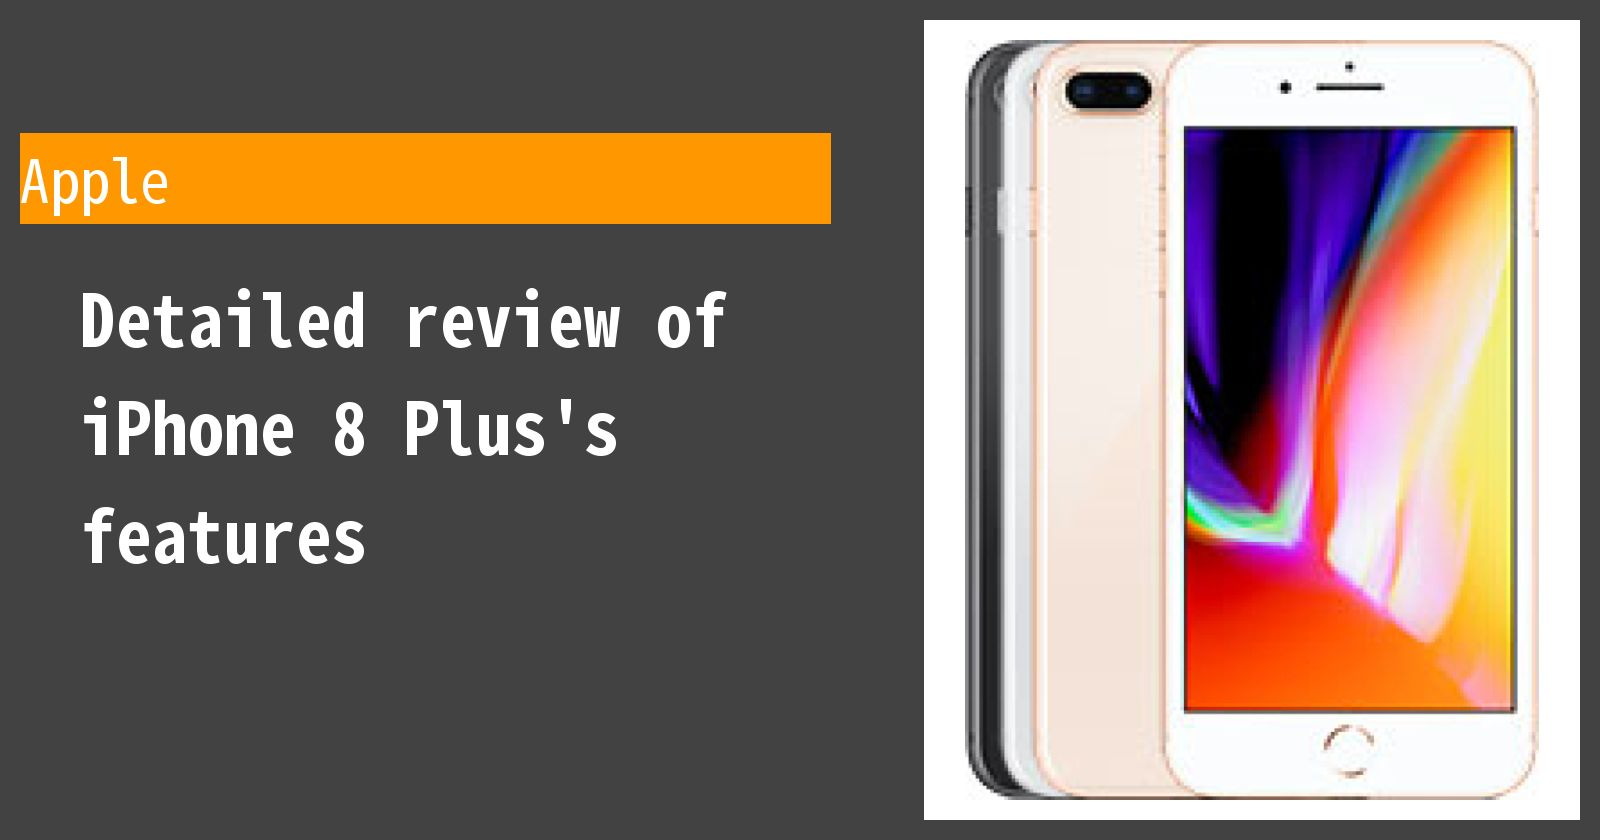 Detailed review of iPhone 8 Plus's features